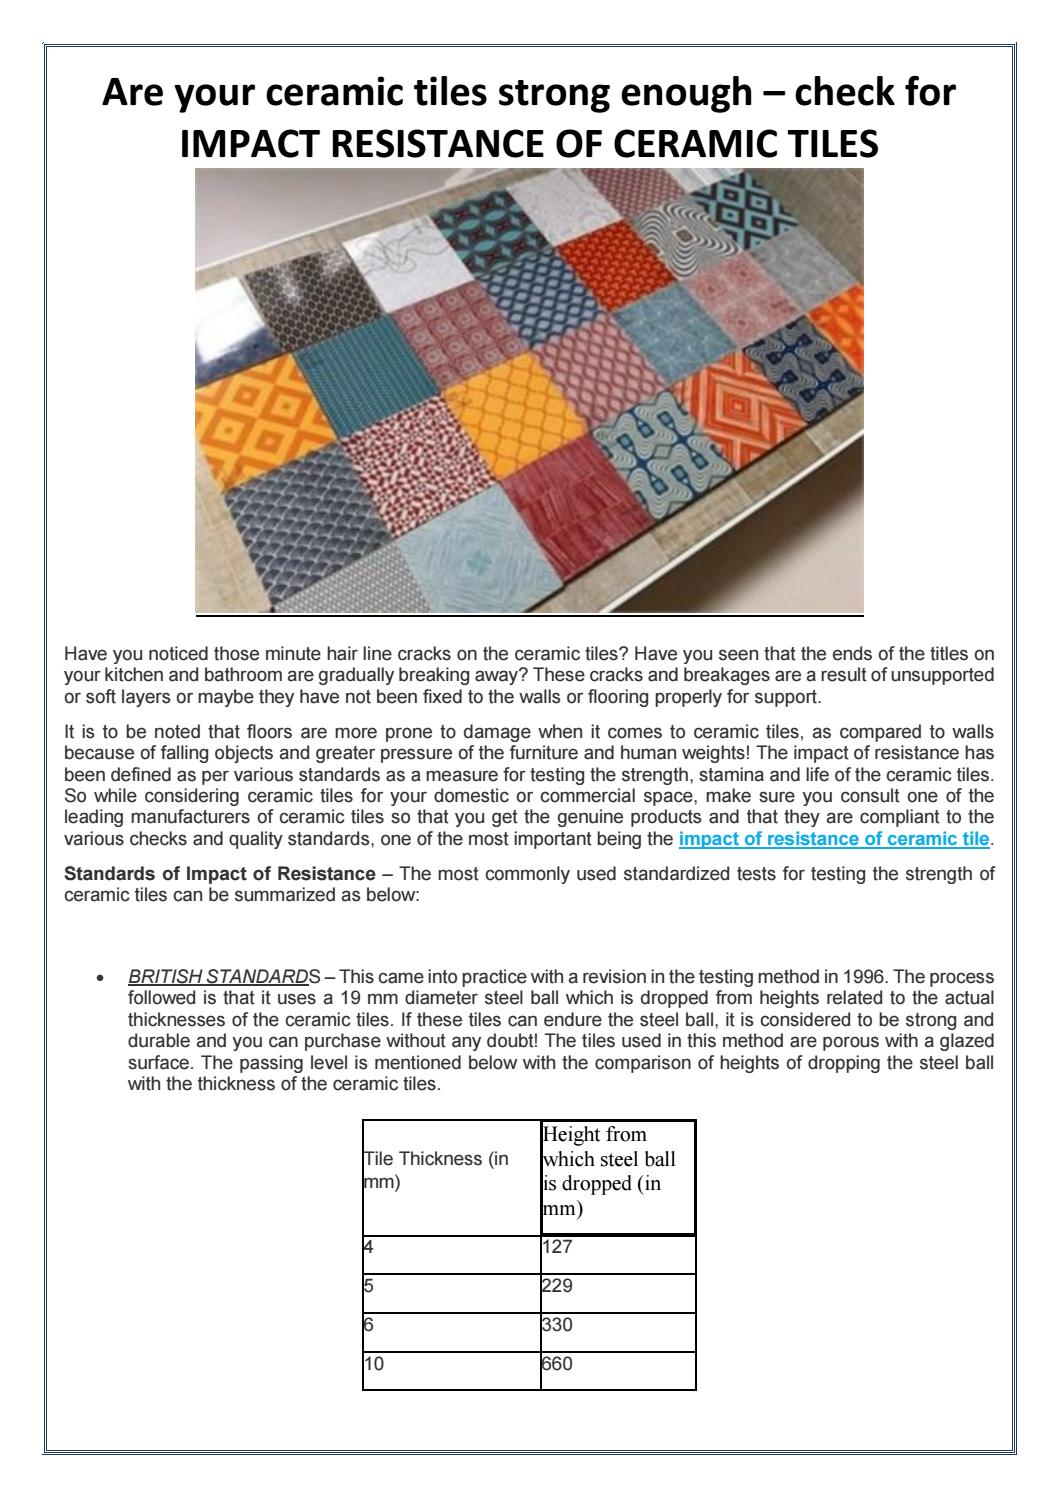 Are your ceramic tiles strong enough by EIE Instruments - issuu